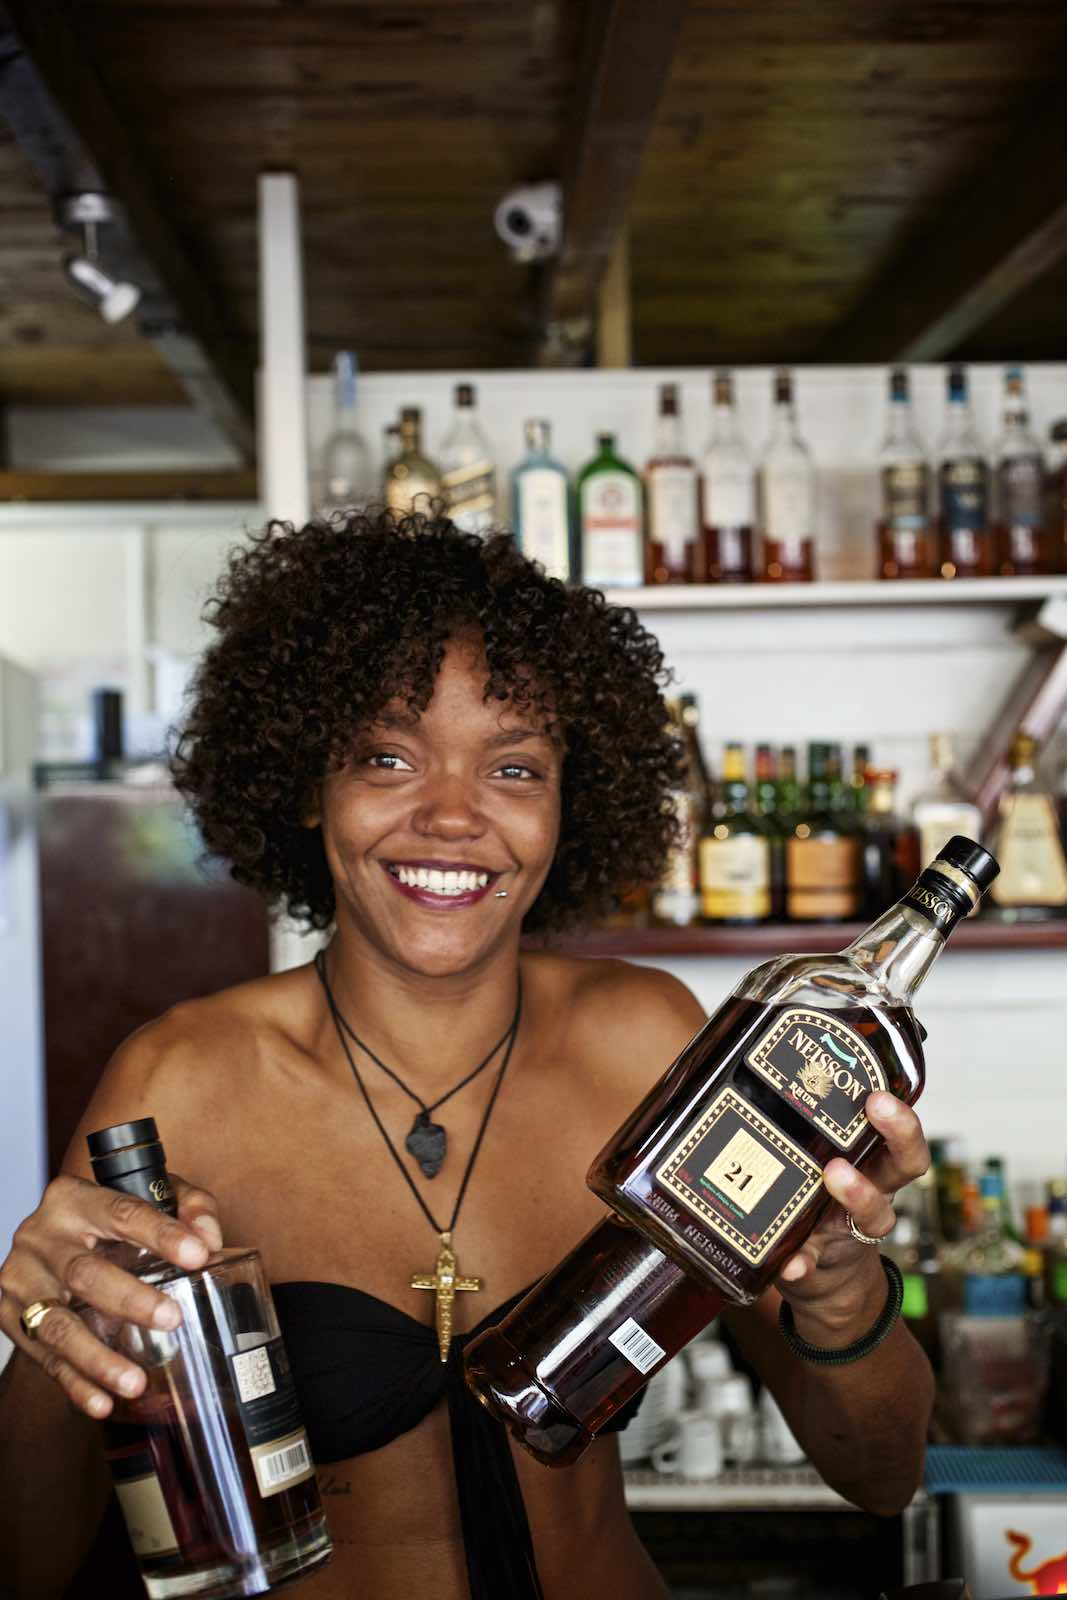 Jody Horton Photography - Bar tender smiling while holding three bottles of rum behind the bar.